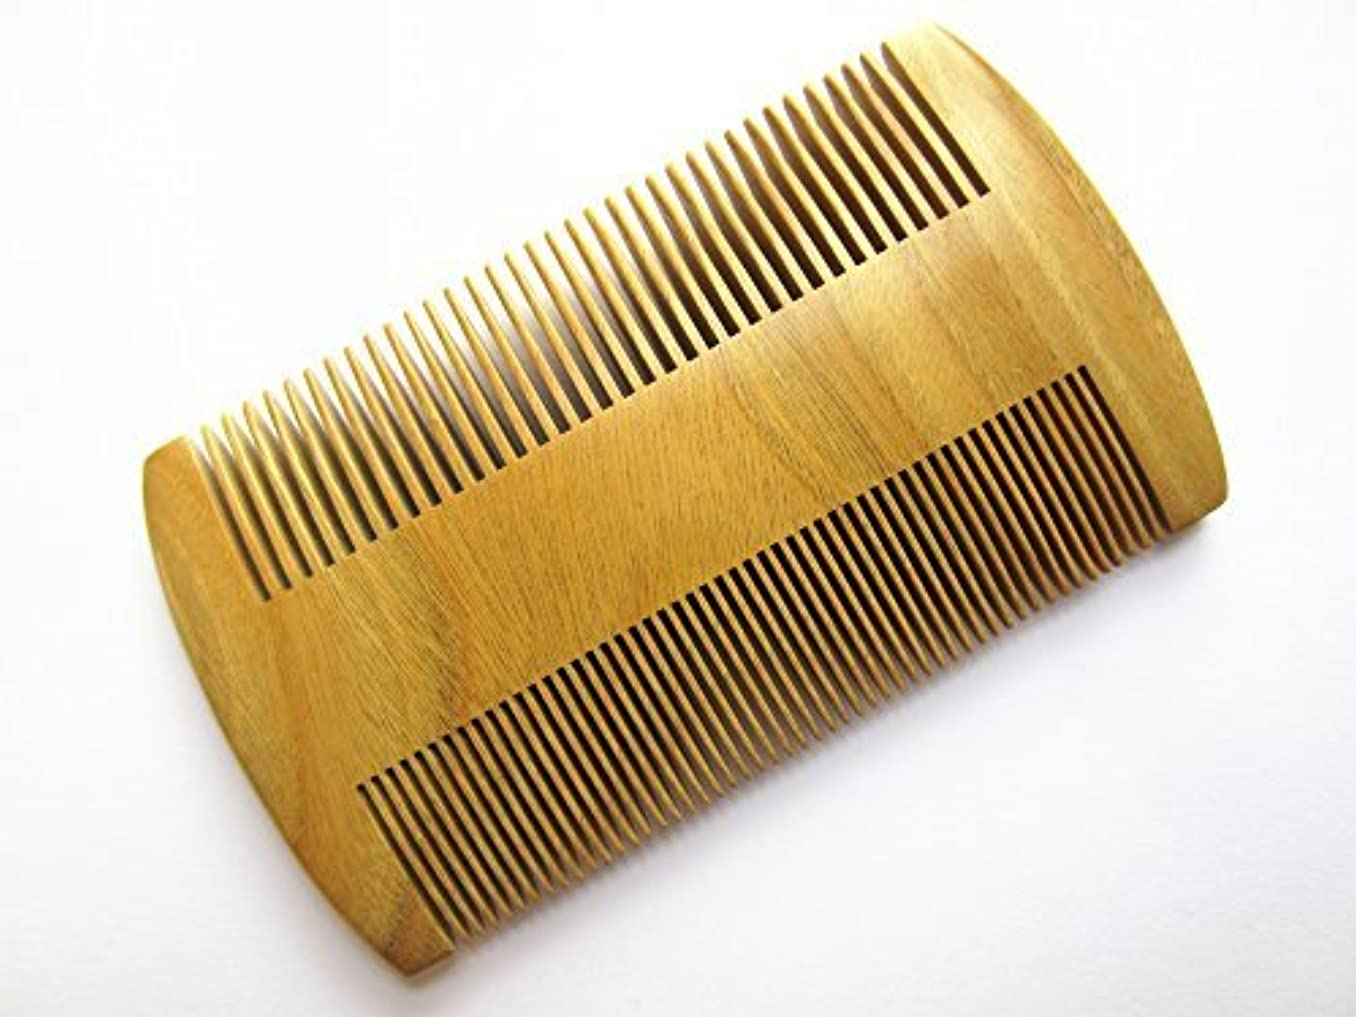 振る舞う道に迷いましたウナギMyhsmooth GS-S2M-N2F Handmade Natural Green Sandalwood No Static Pocket Comb Perfect Beard Comb with Aromatic...